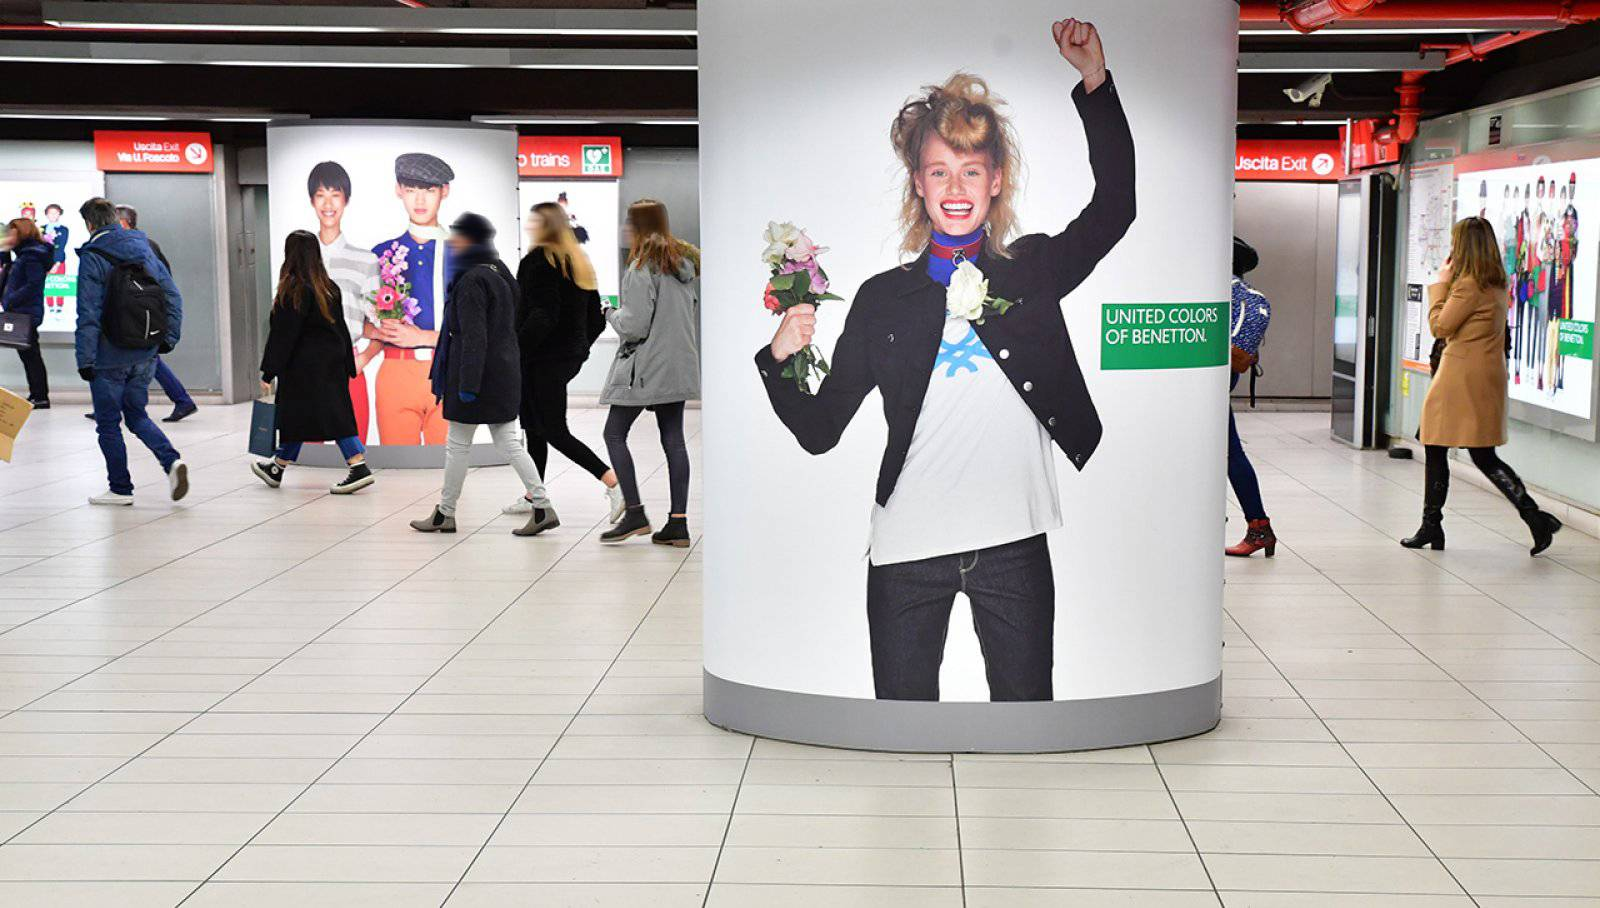 UNITED COLORS OF BENETTON station domination IGPDecaux